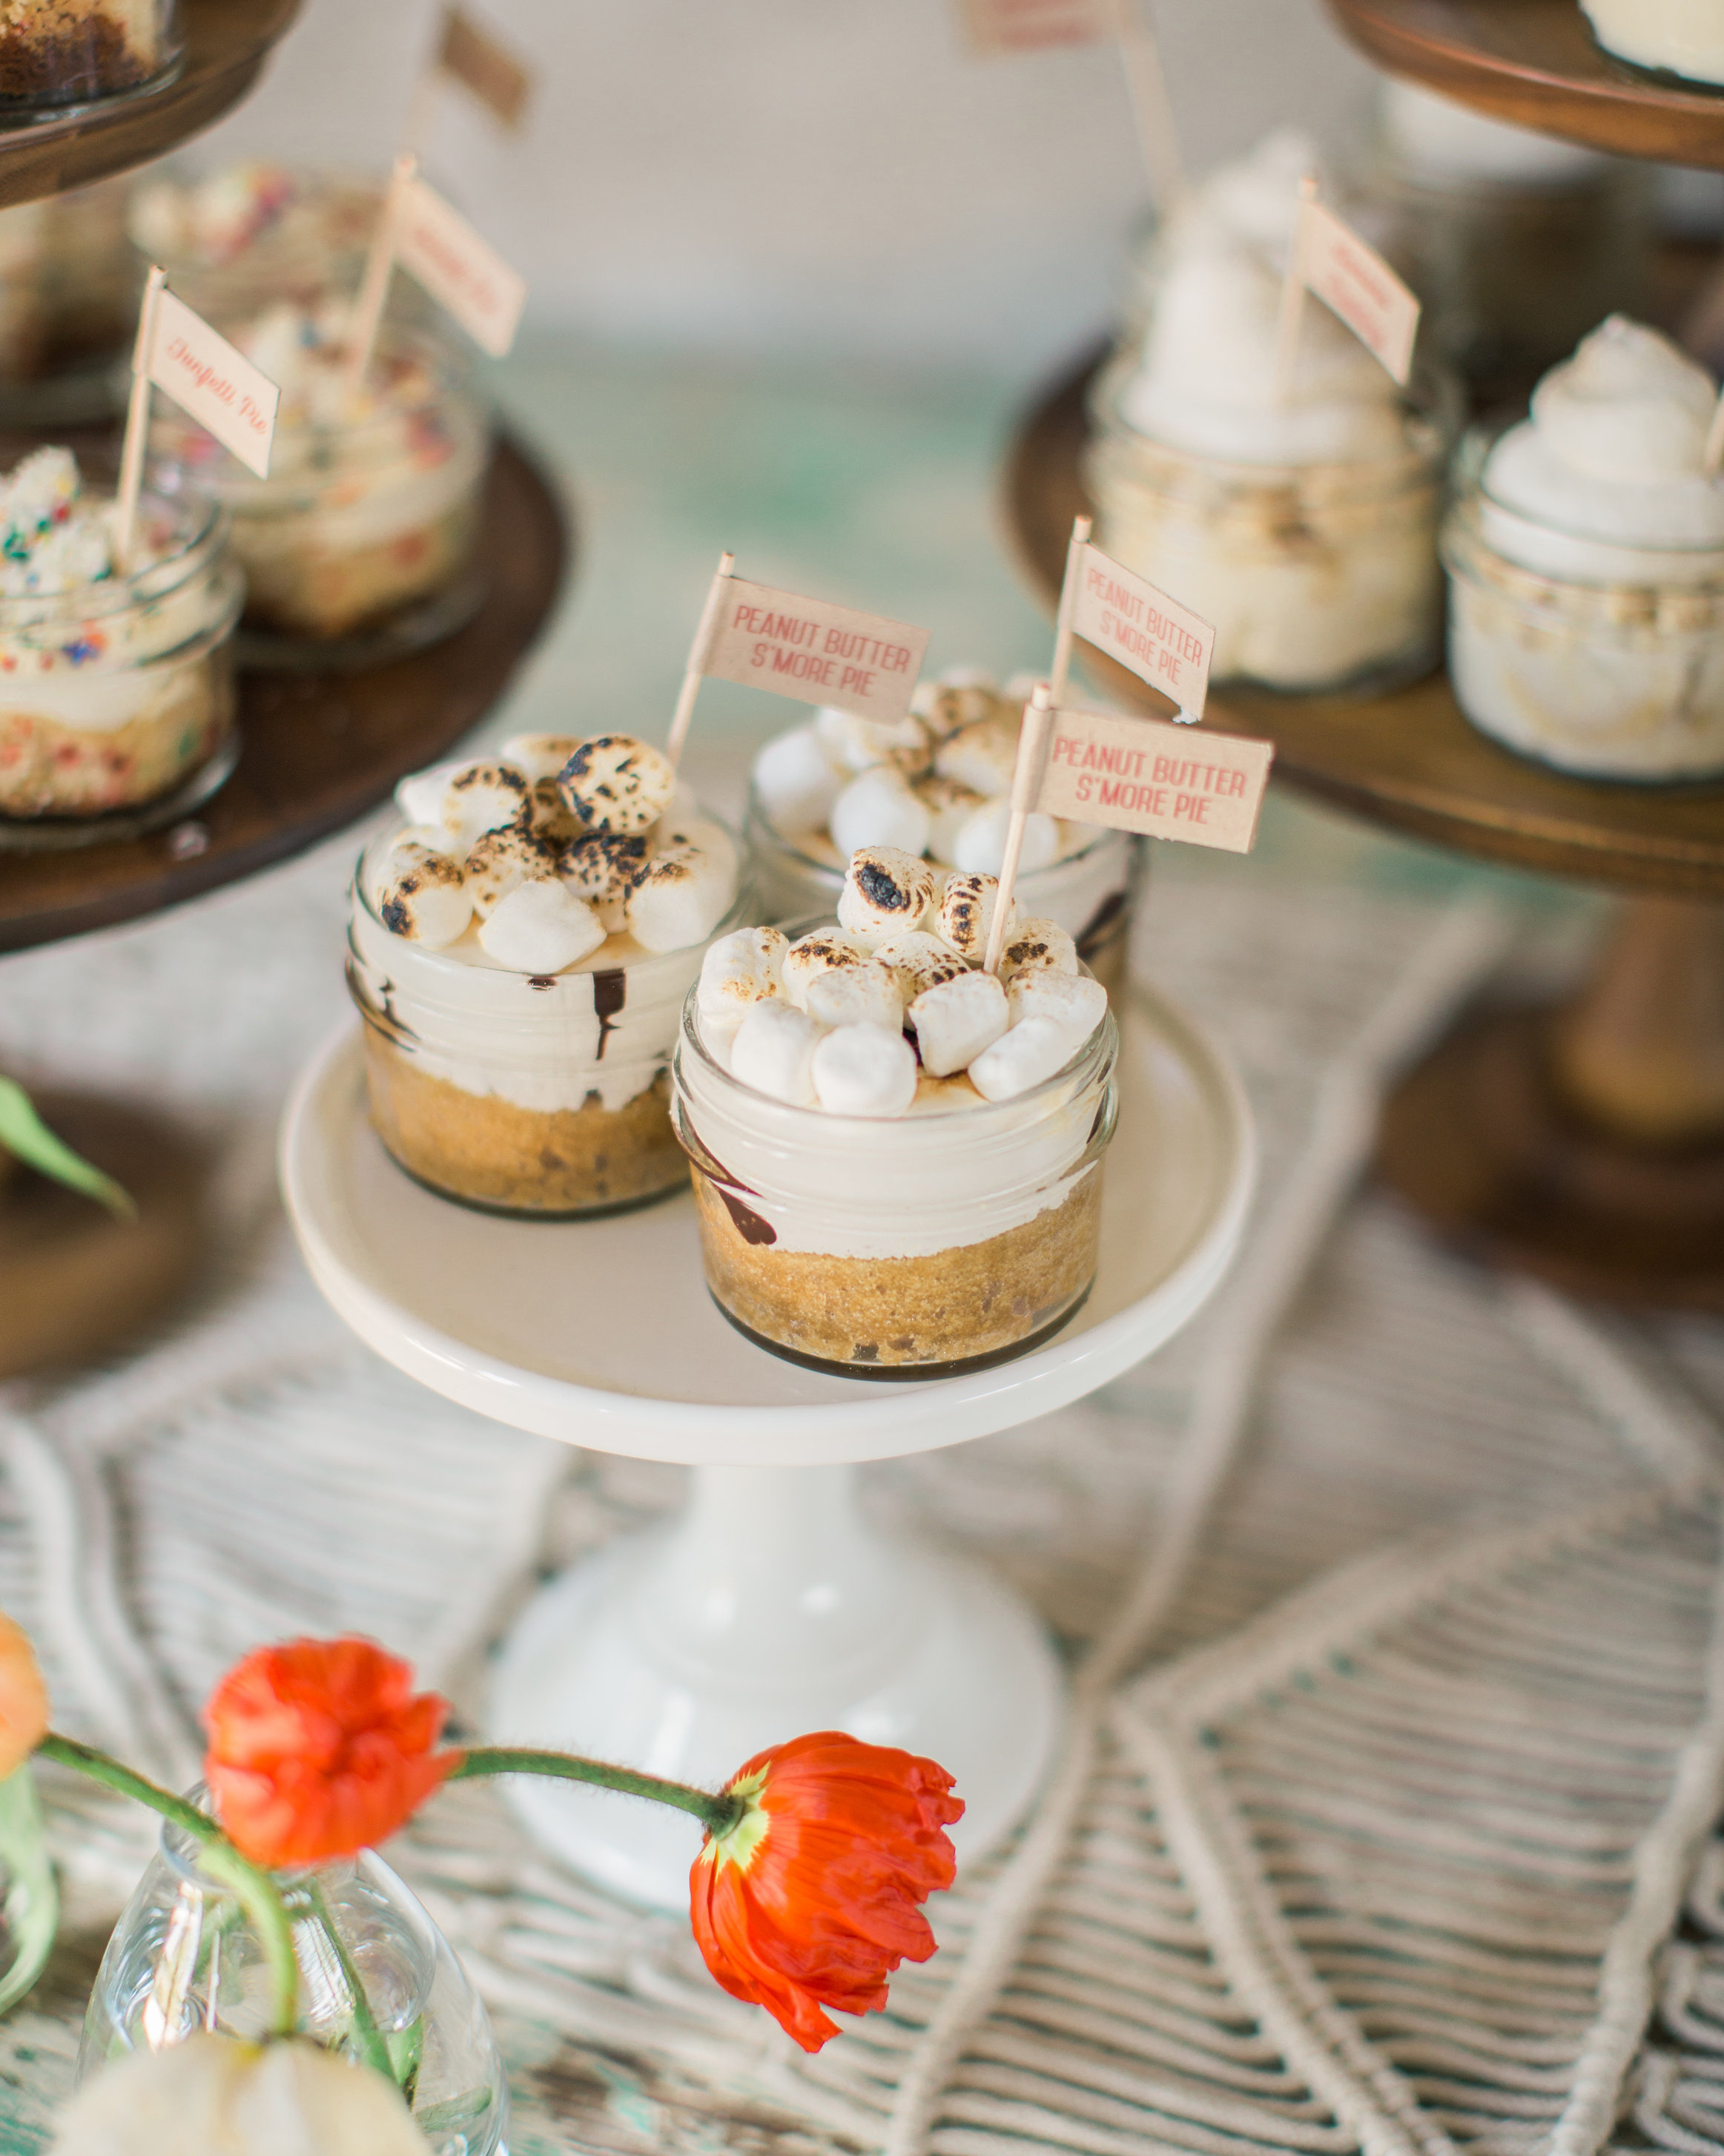 lara-chad-wedding-tarts-167-s112306-1115.jpg